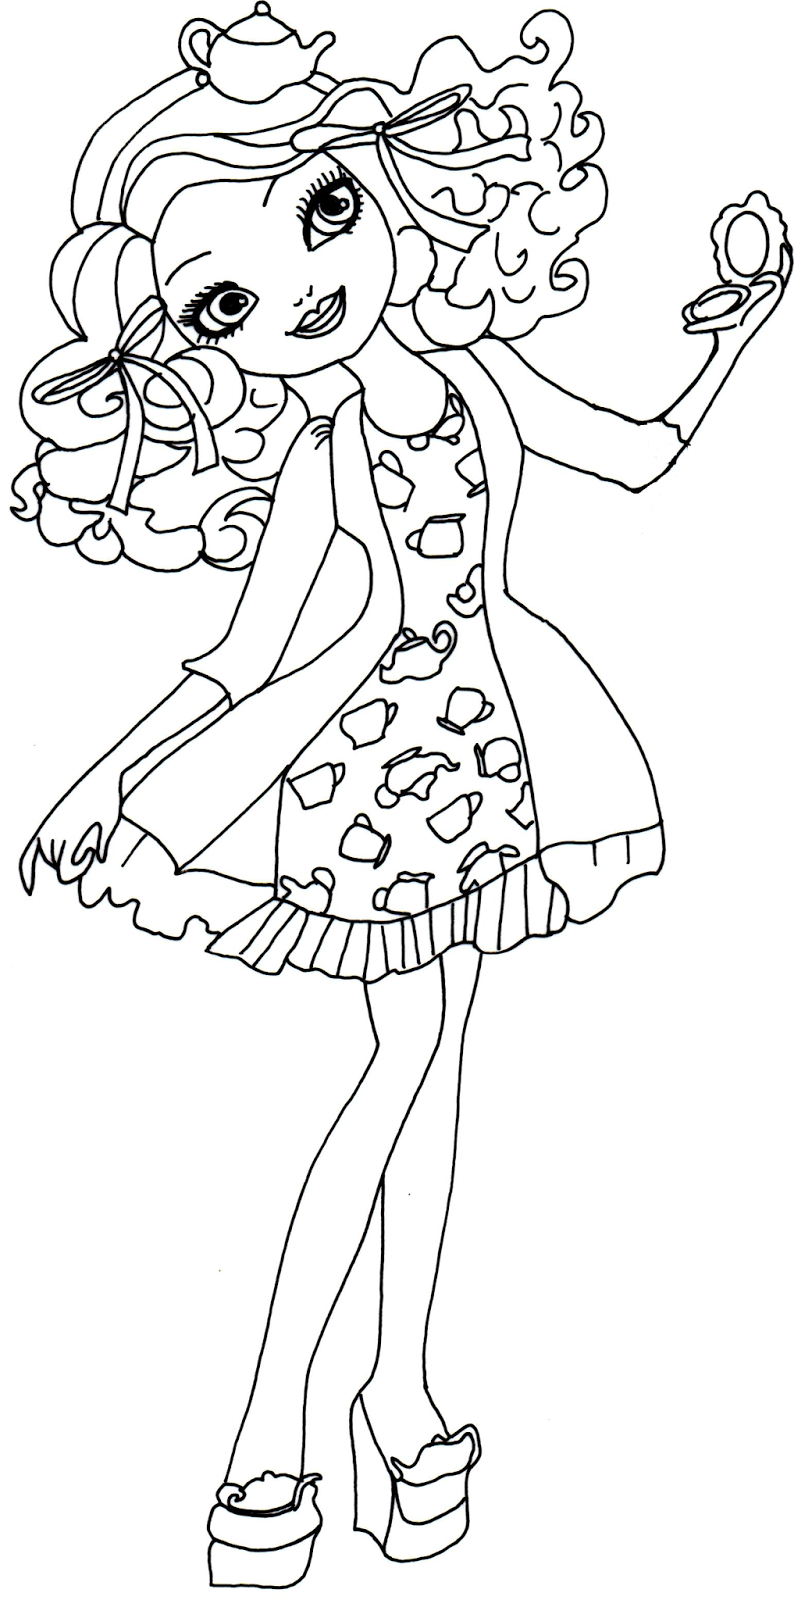 Homies Coloring Pages Coloring Pages